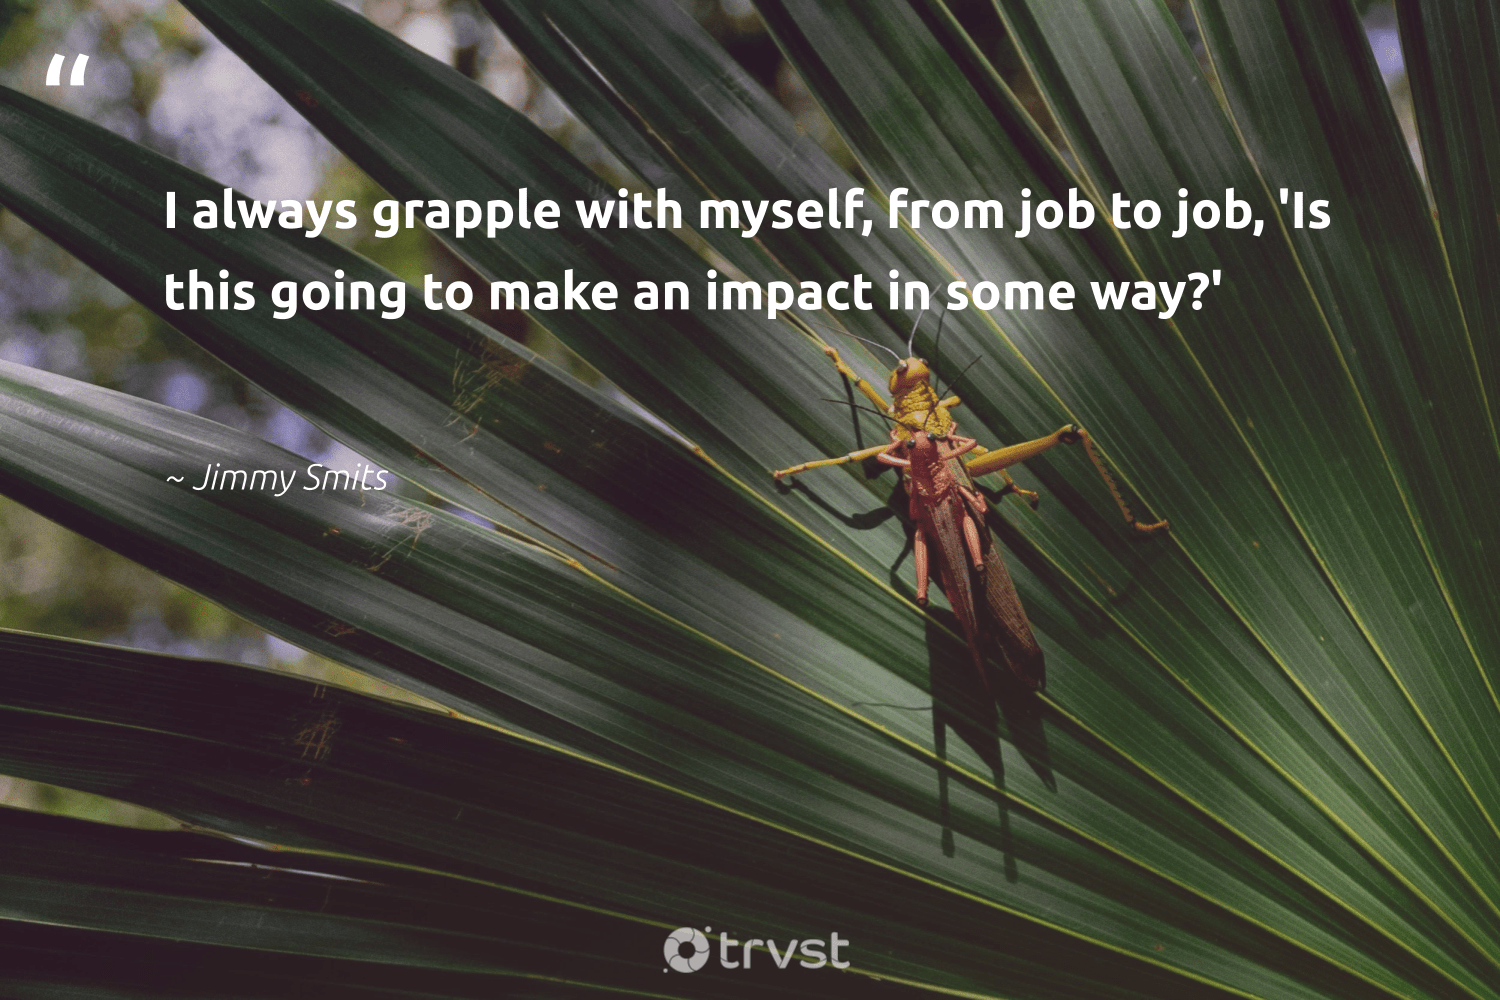 """""""I always grapple with myself, from job to job, 'Is this going to make an impact in some way?'""""  - Jimmy Smits #trvst #quotes #impact #socialchange #dotherightthing #dogood #changetheworld #betterplanet #planetearthfirst #makeadifference #ecoconscious #giveback"""